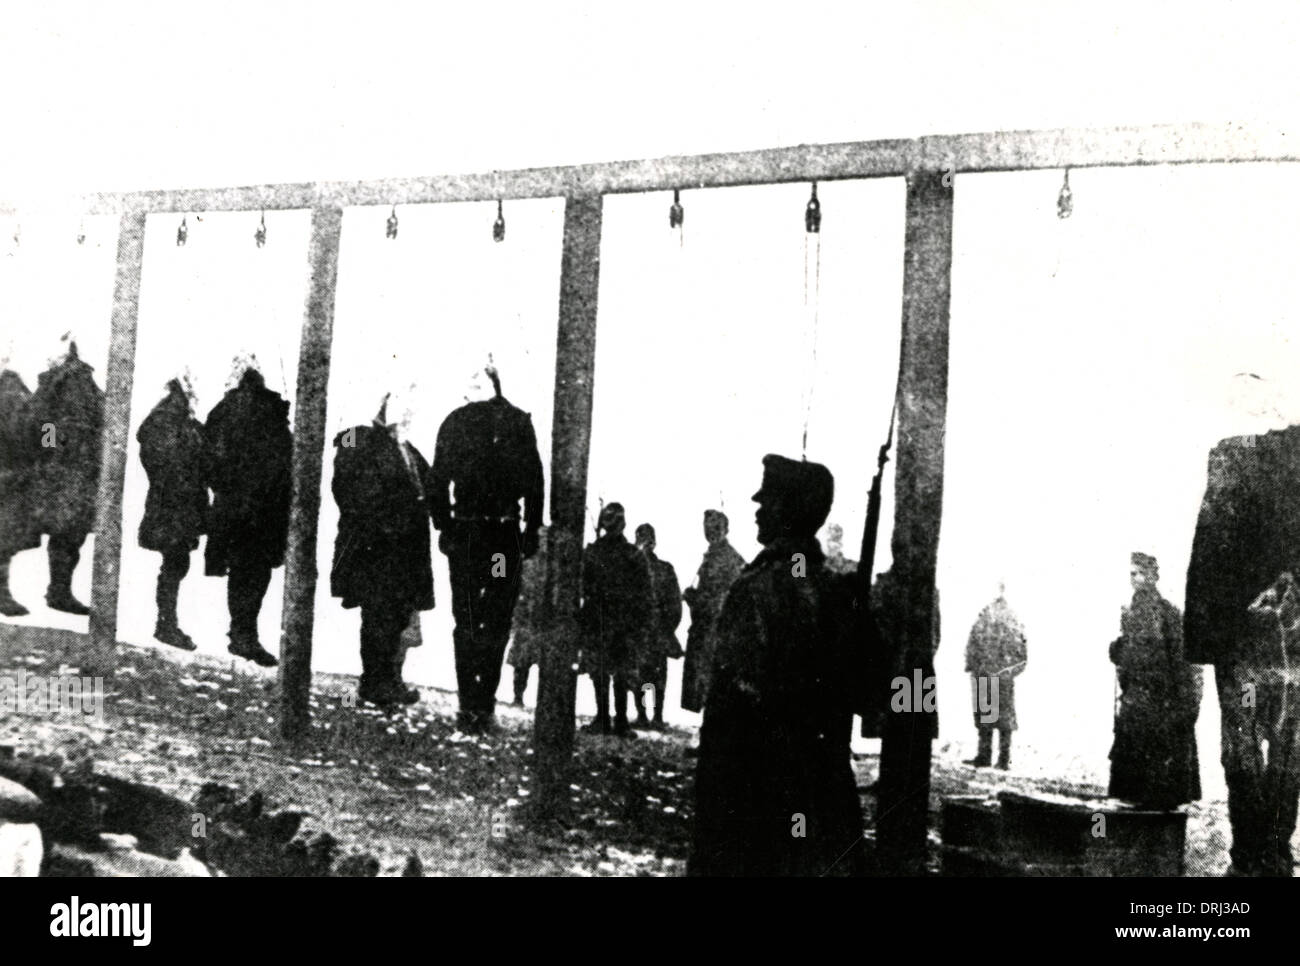 Reprisals against Serbians, Herzegovina, WW1 - Stock Image